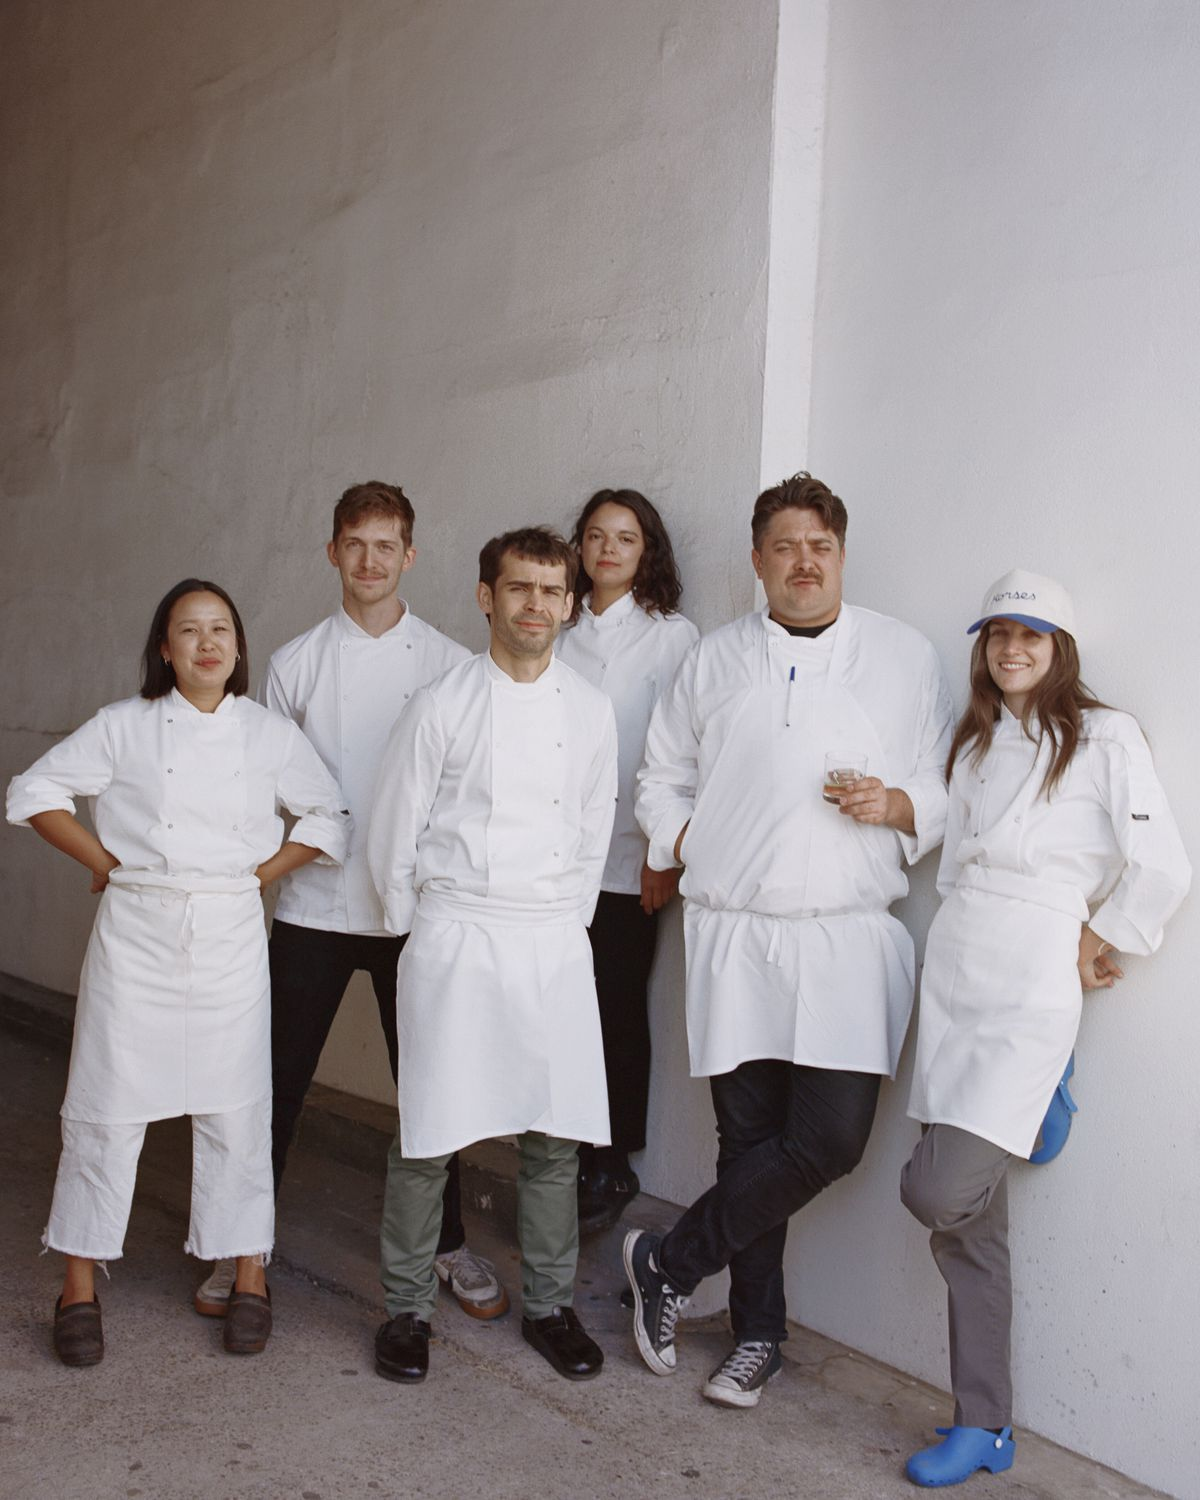 A group of white coat chefs and cooks in an alleyway behind a restaurant.